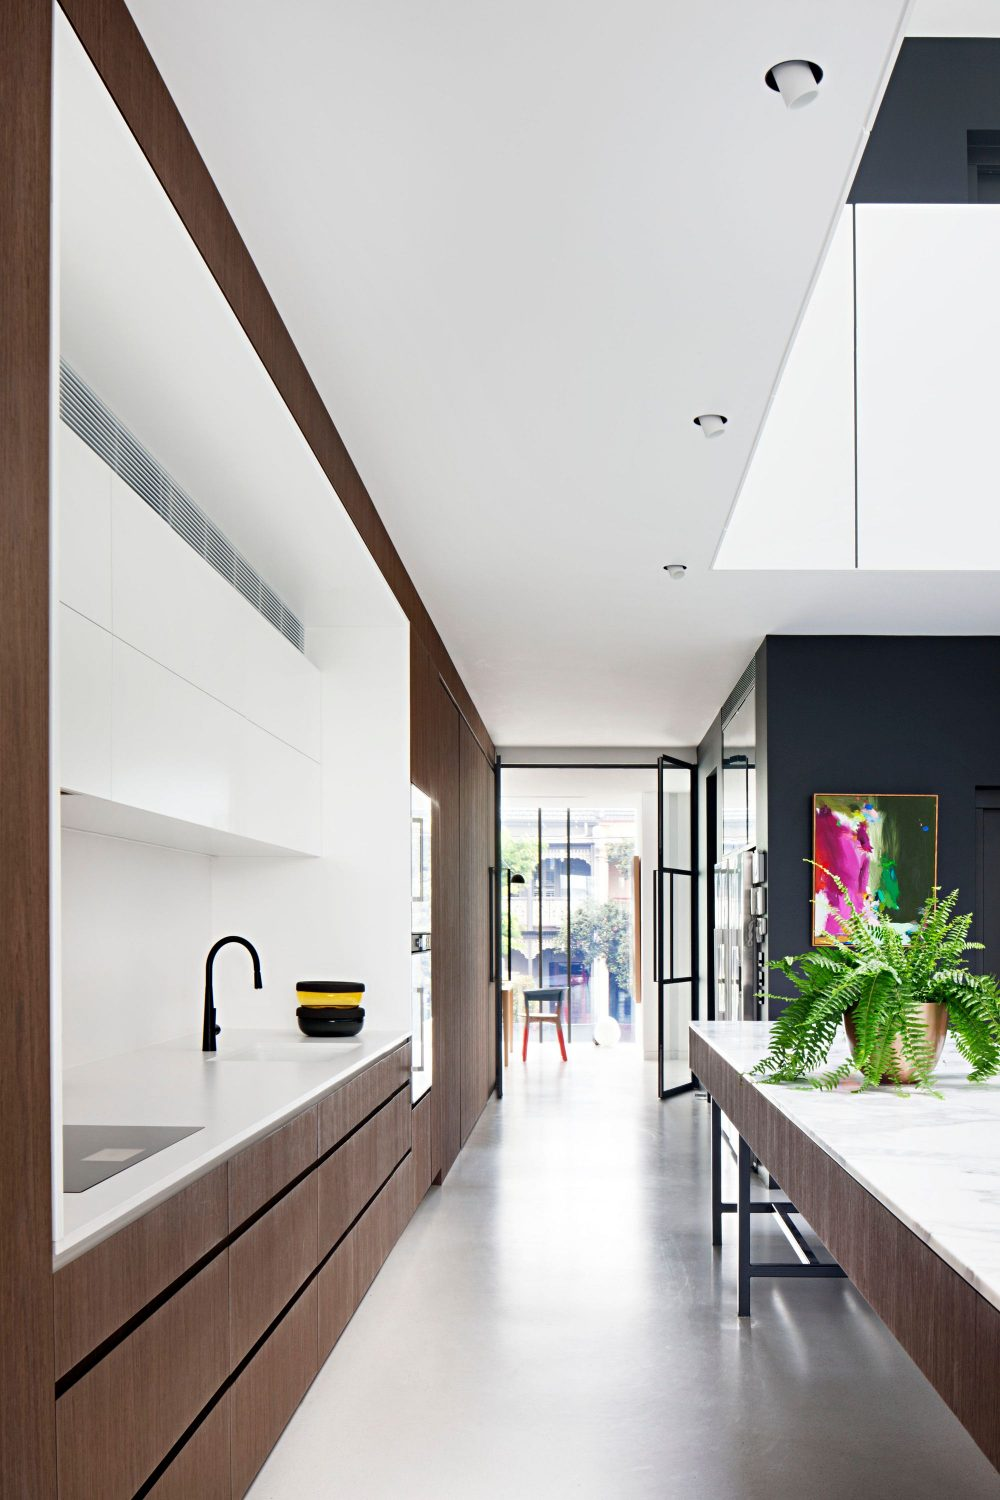 Mixed Use House by Matt Gibson Architecture + Design